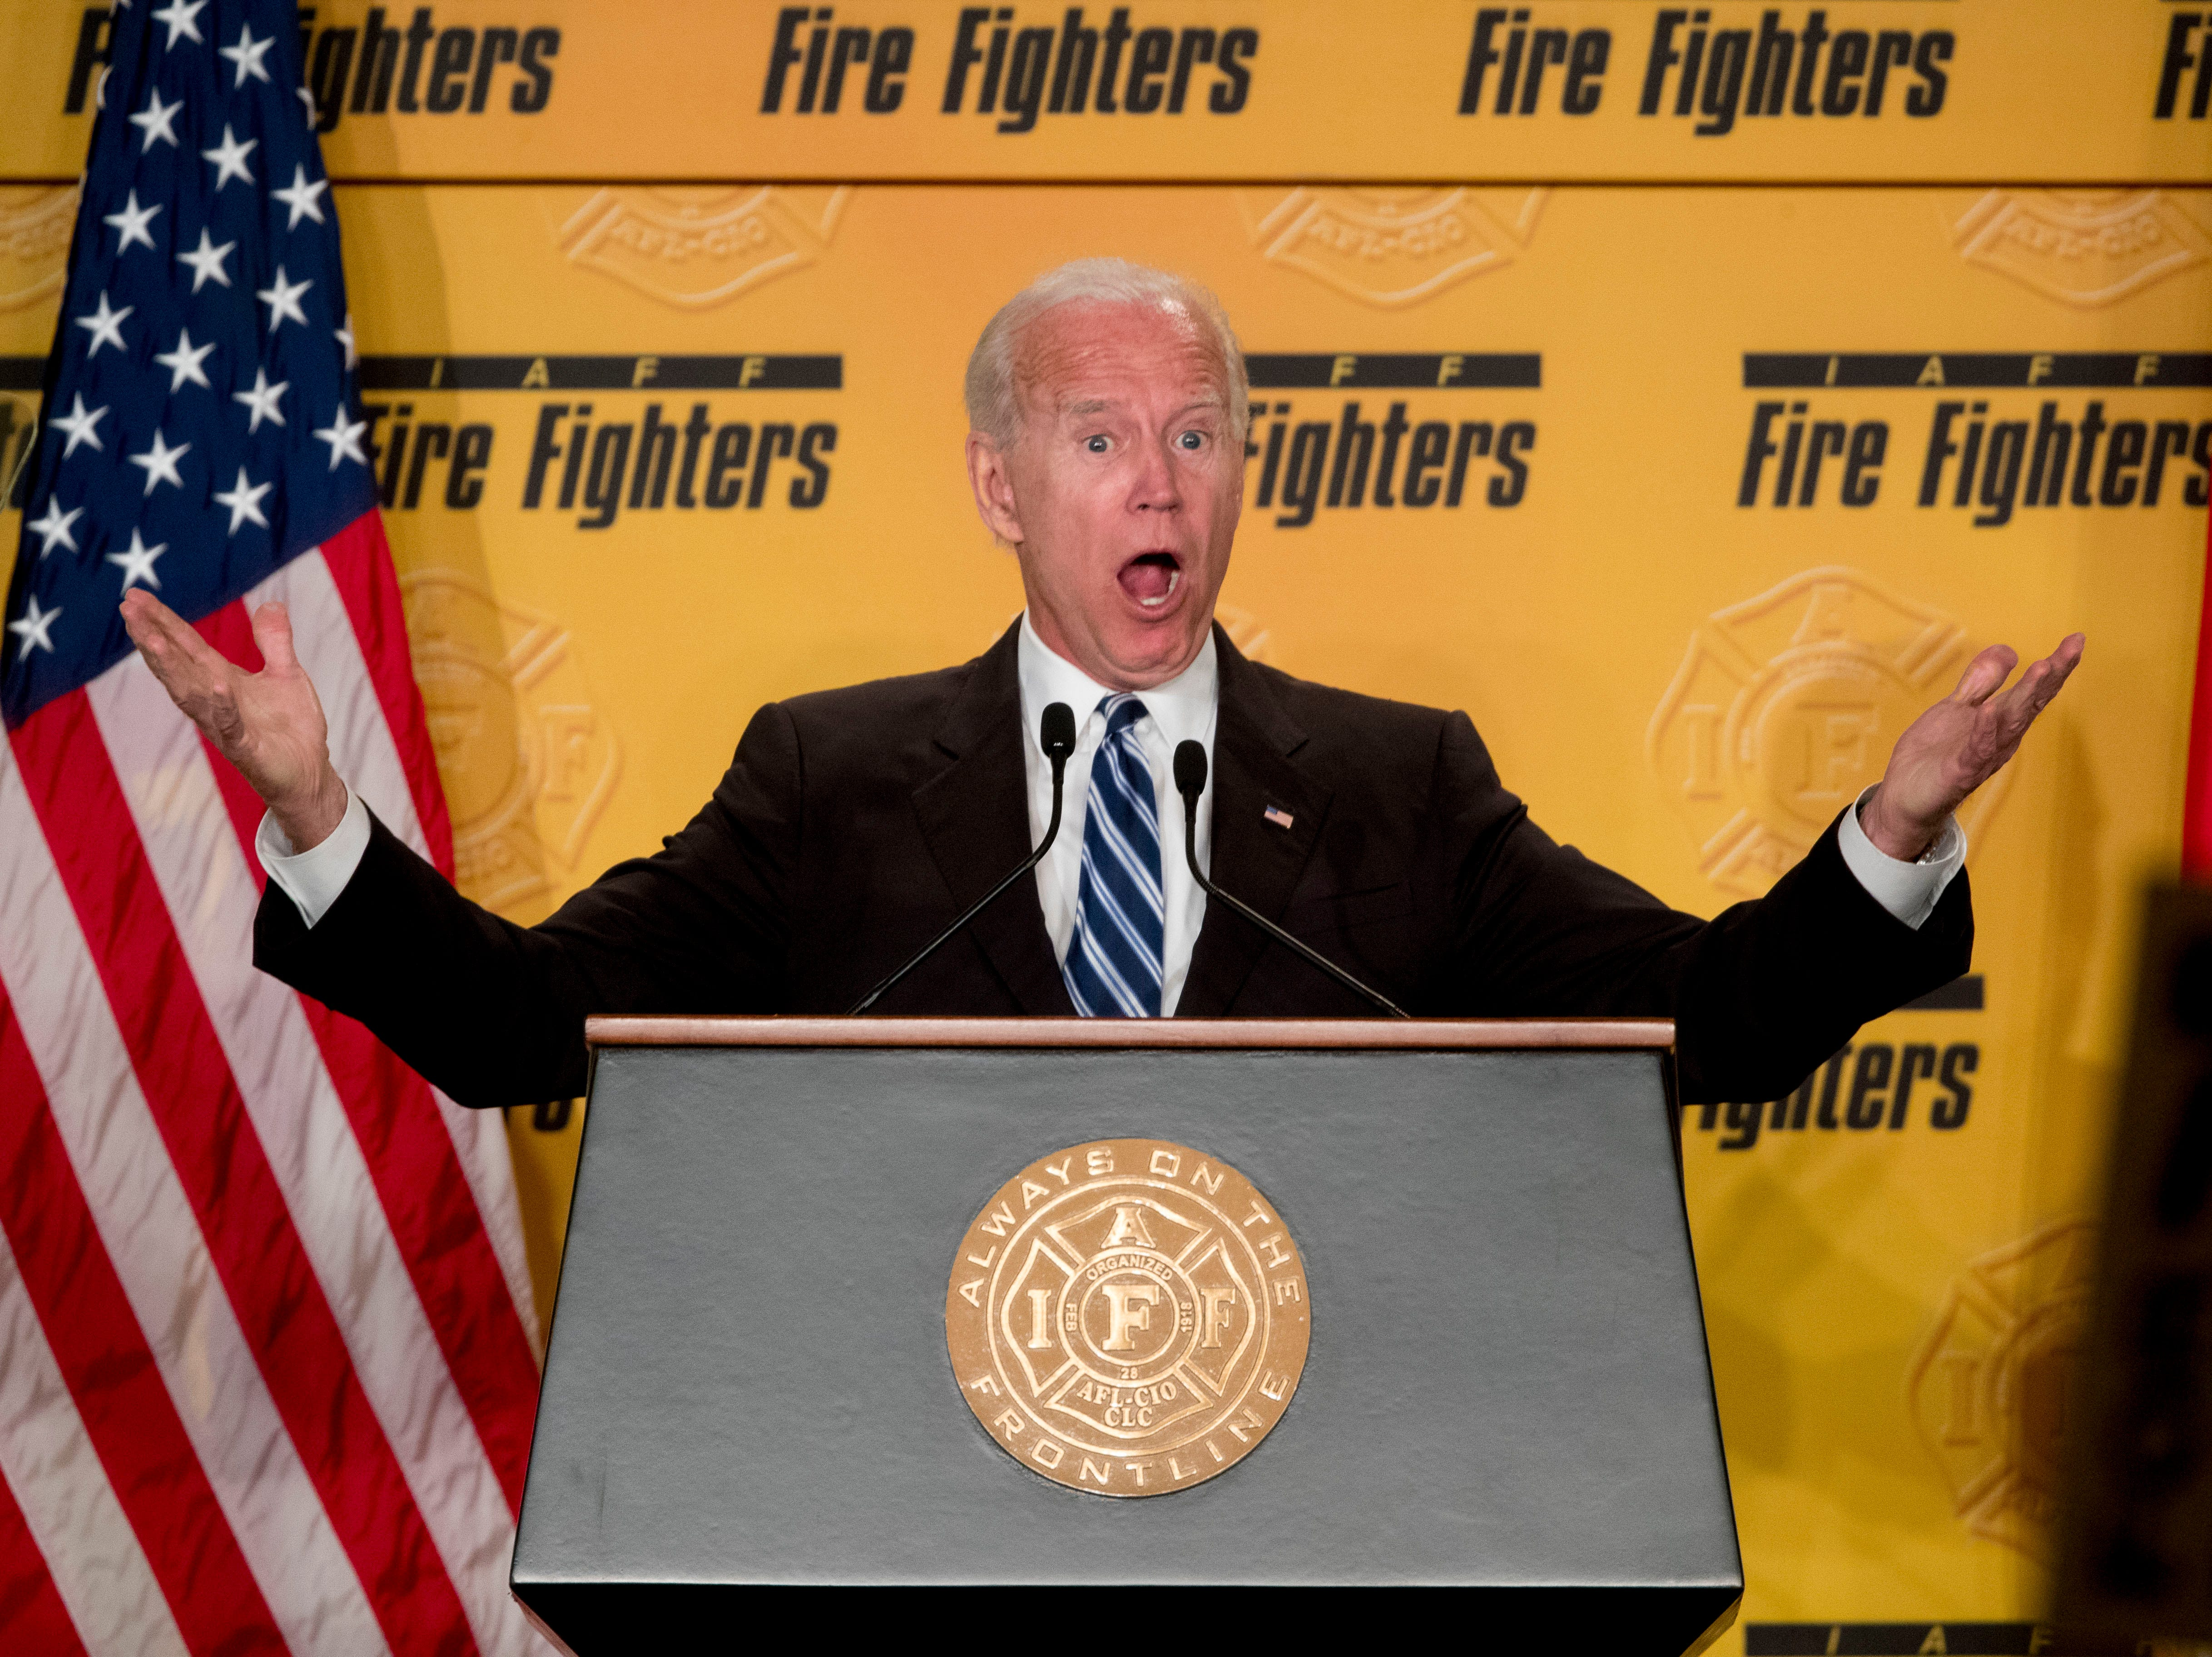 Joe Biden's 2020 nightmare: He could be the Democratic reincarnation of Jeb Bush